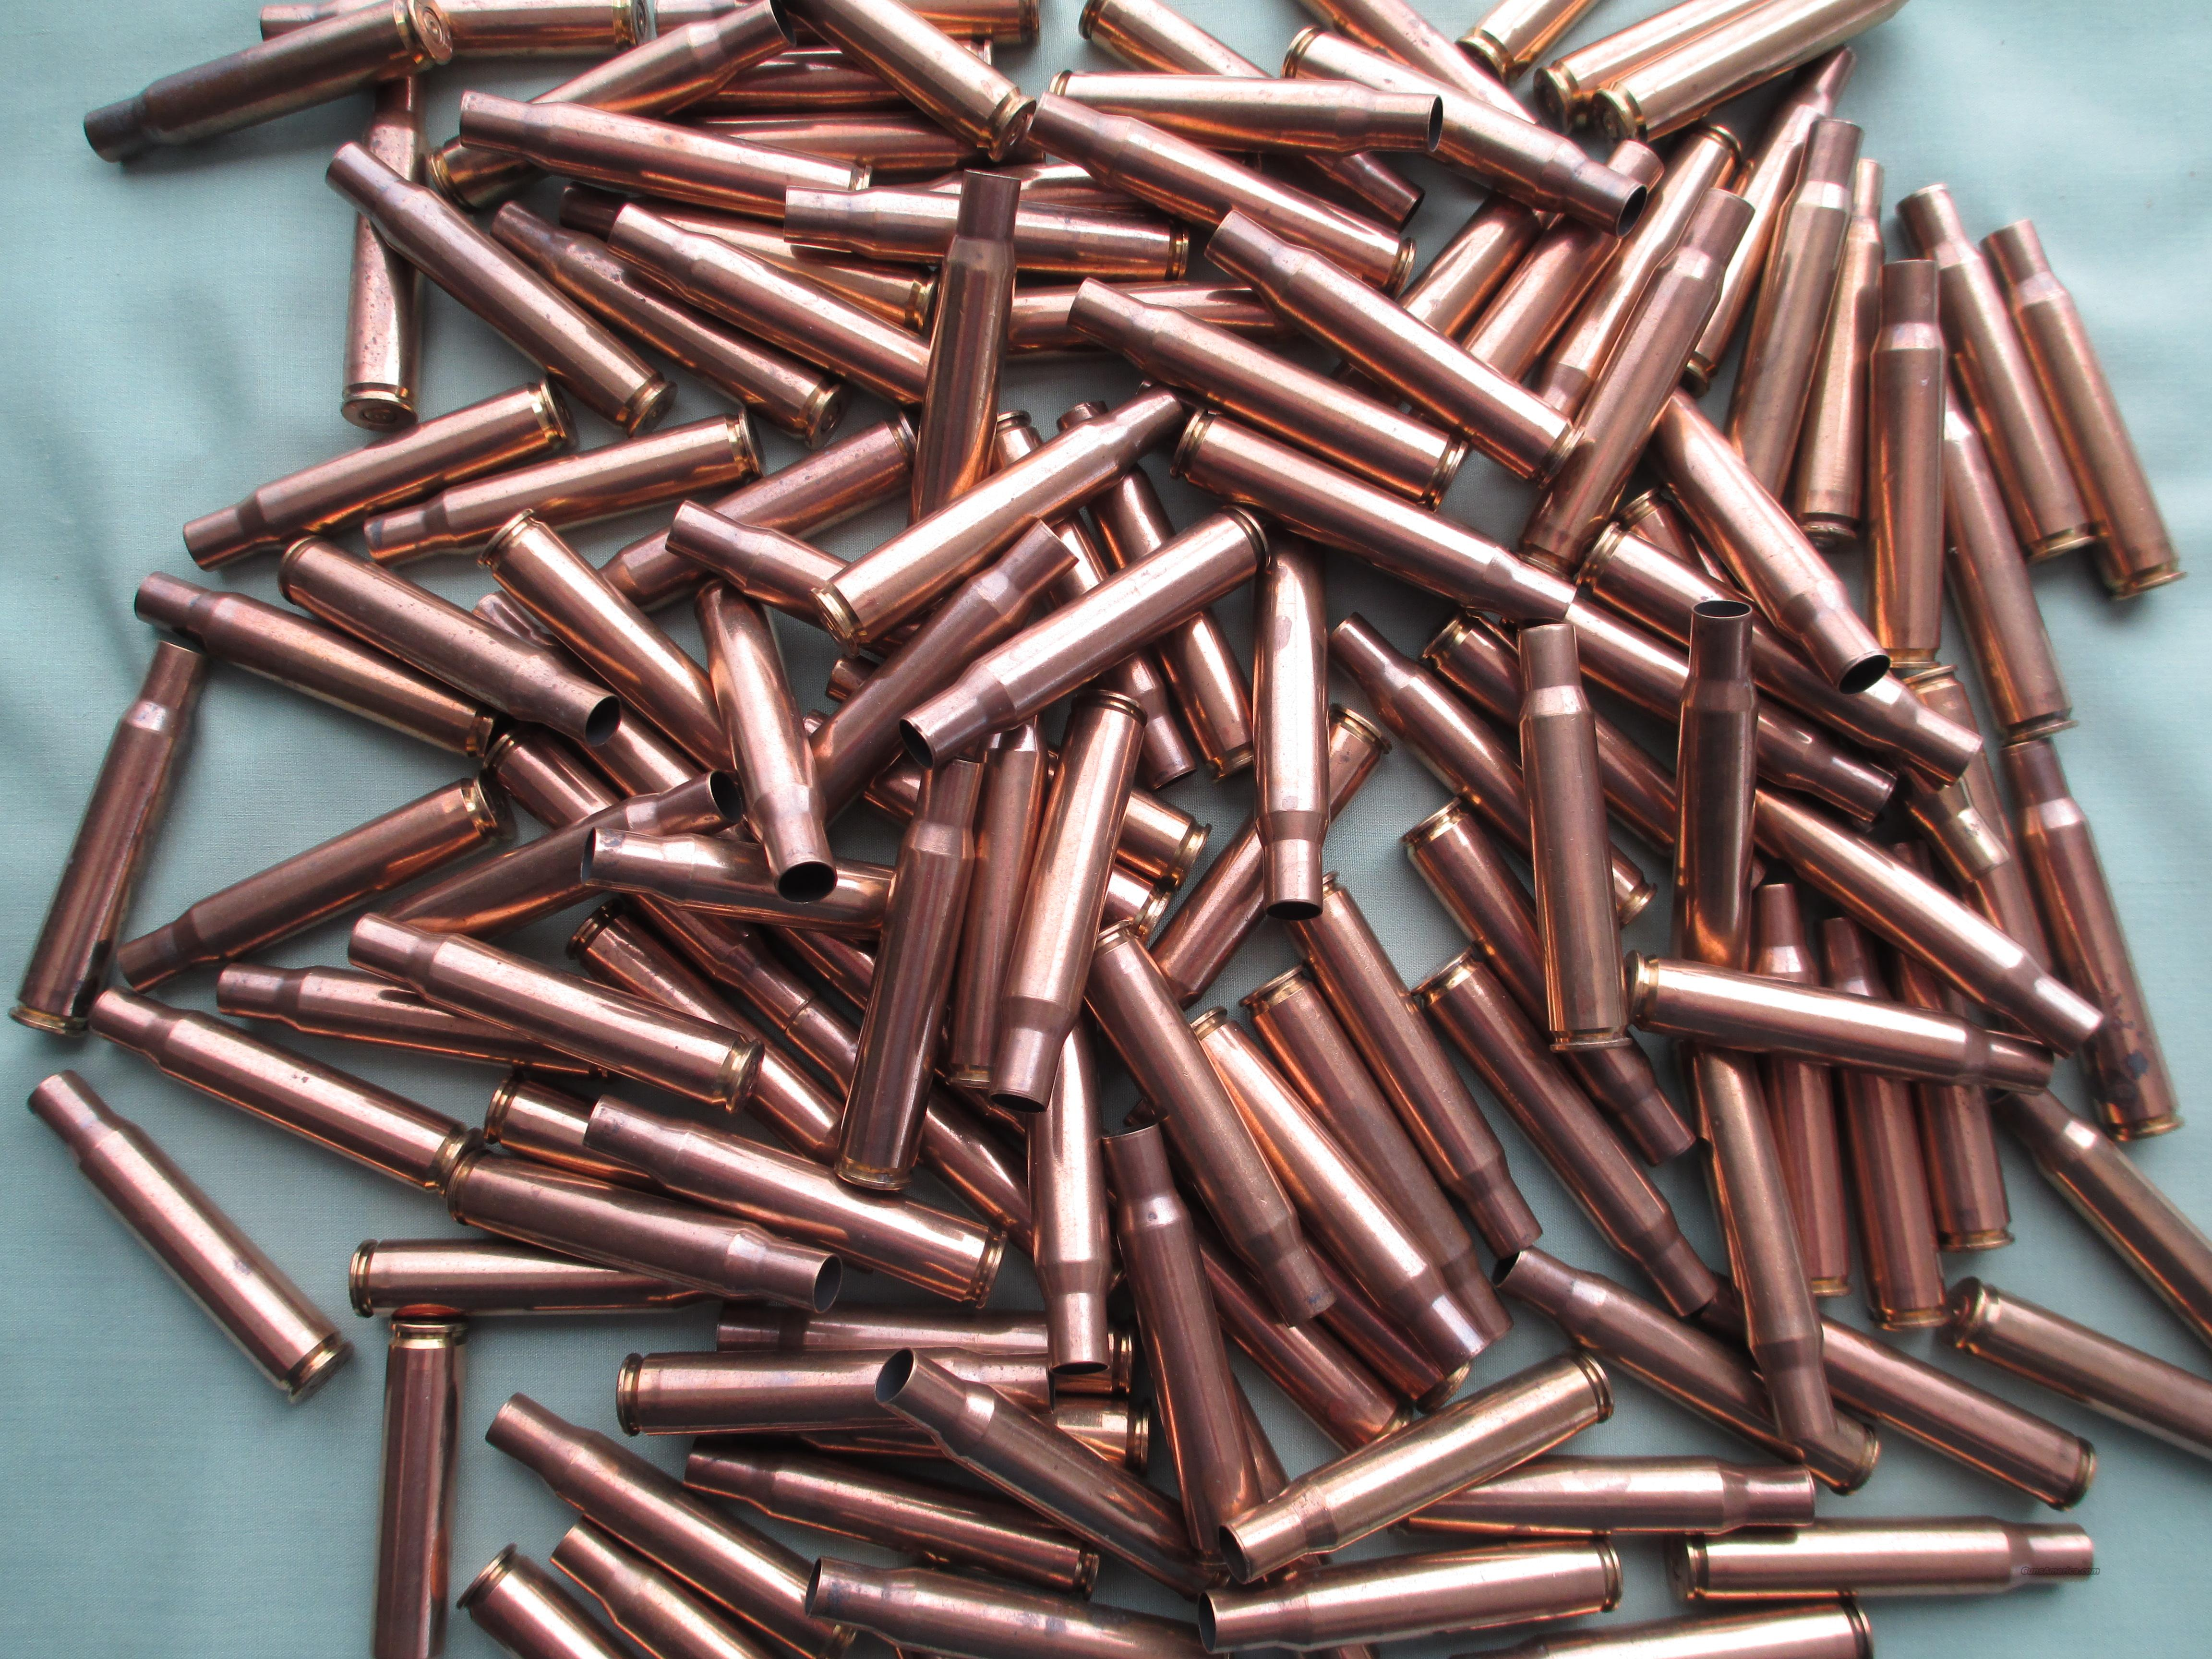 30-06 MILITARY BRASS 250 PCS.  Non-Guns > Reloading > Components > Brass